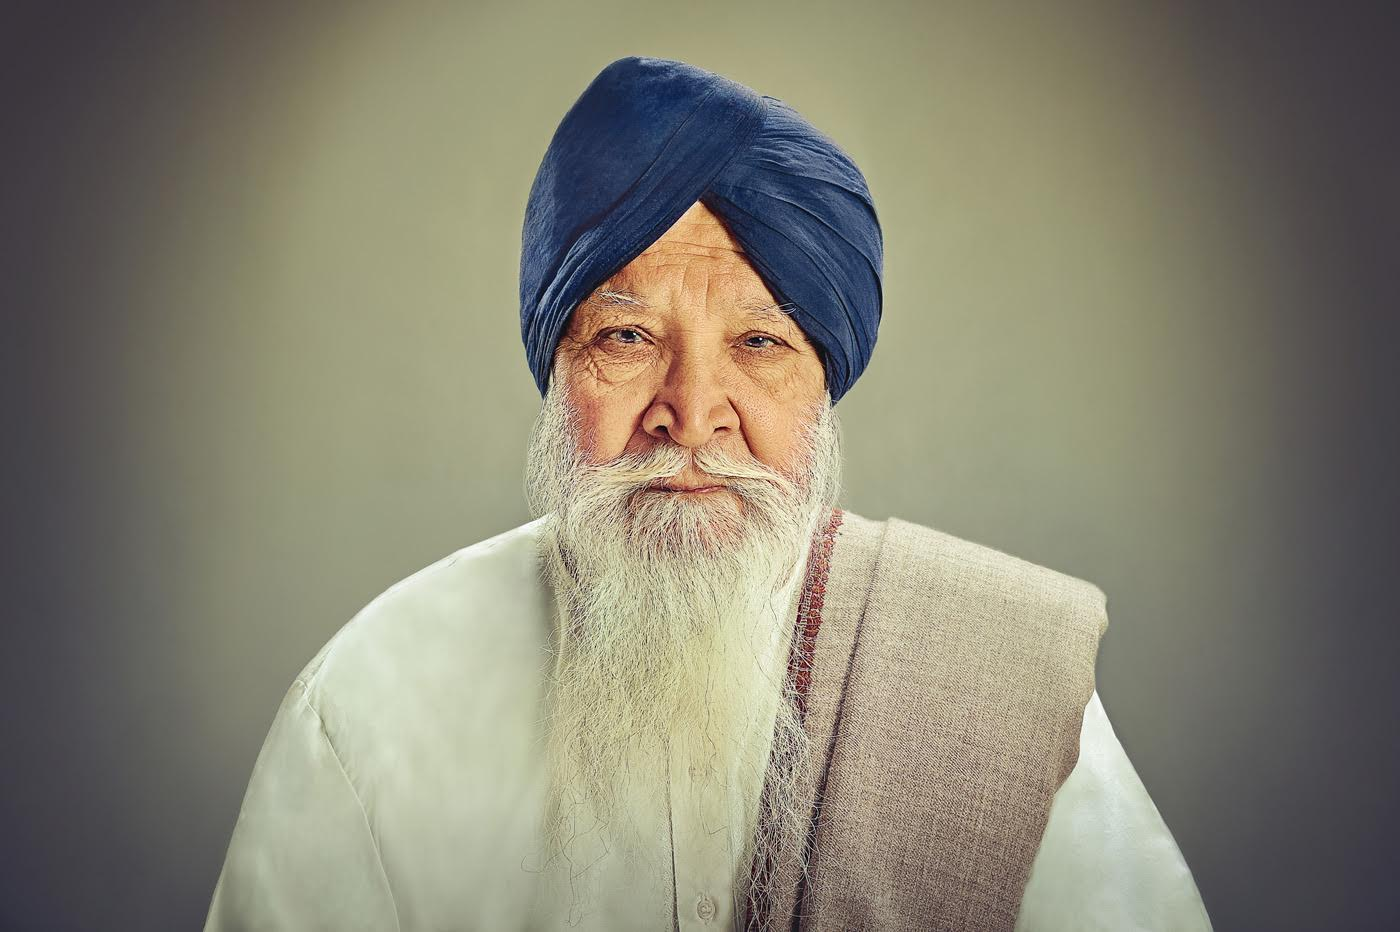 Darshan Singh Bhooi, retired businessman. (Photograph credit: Amit and Naroop).